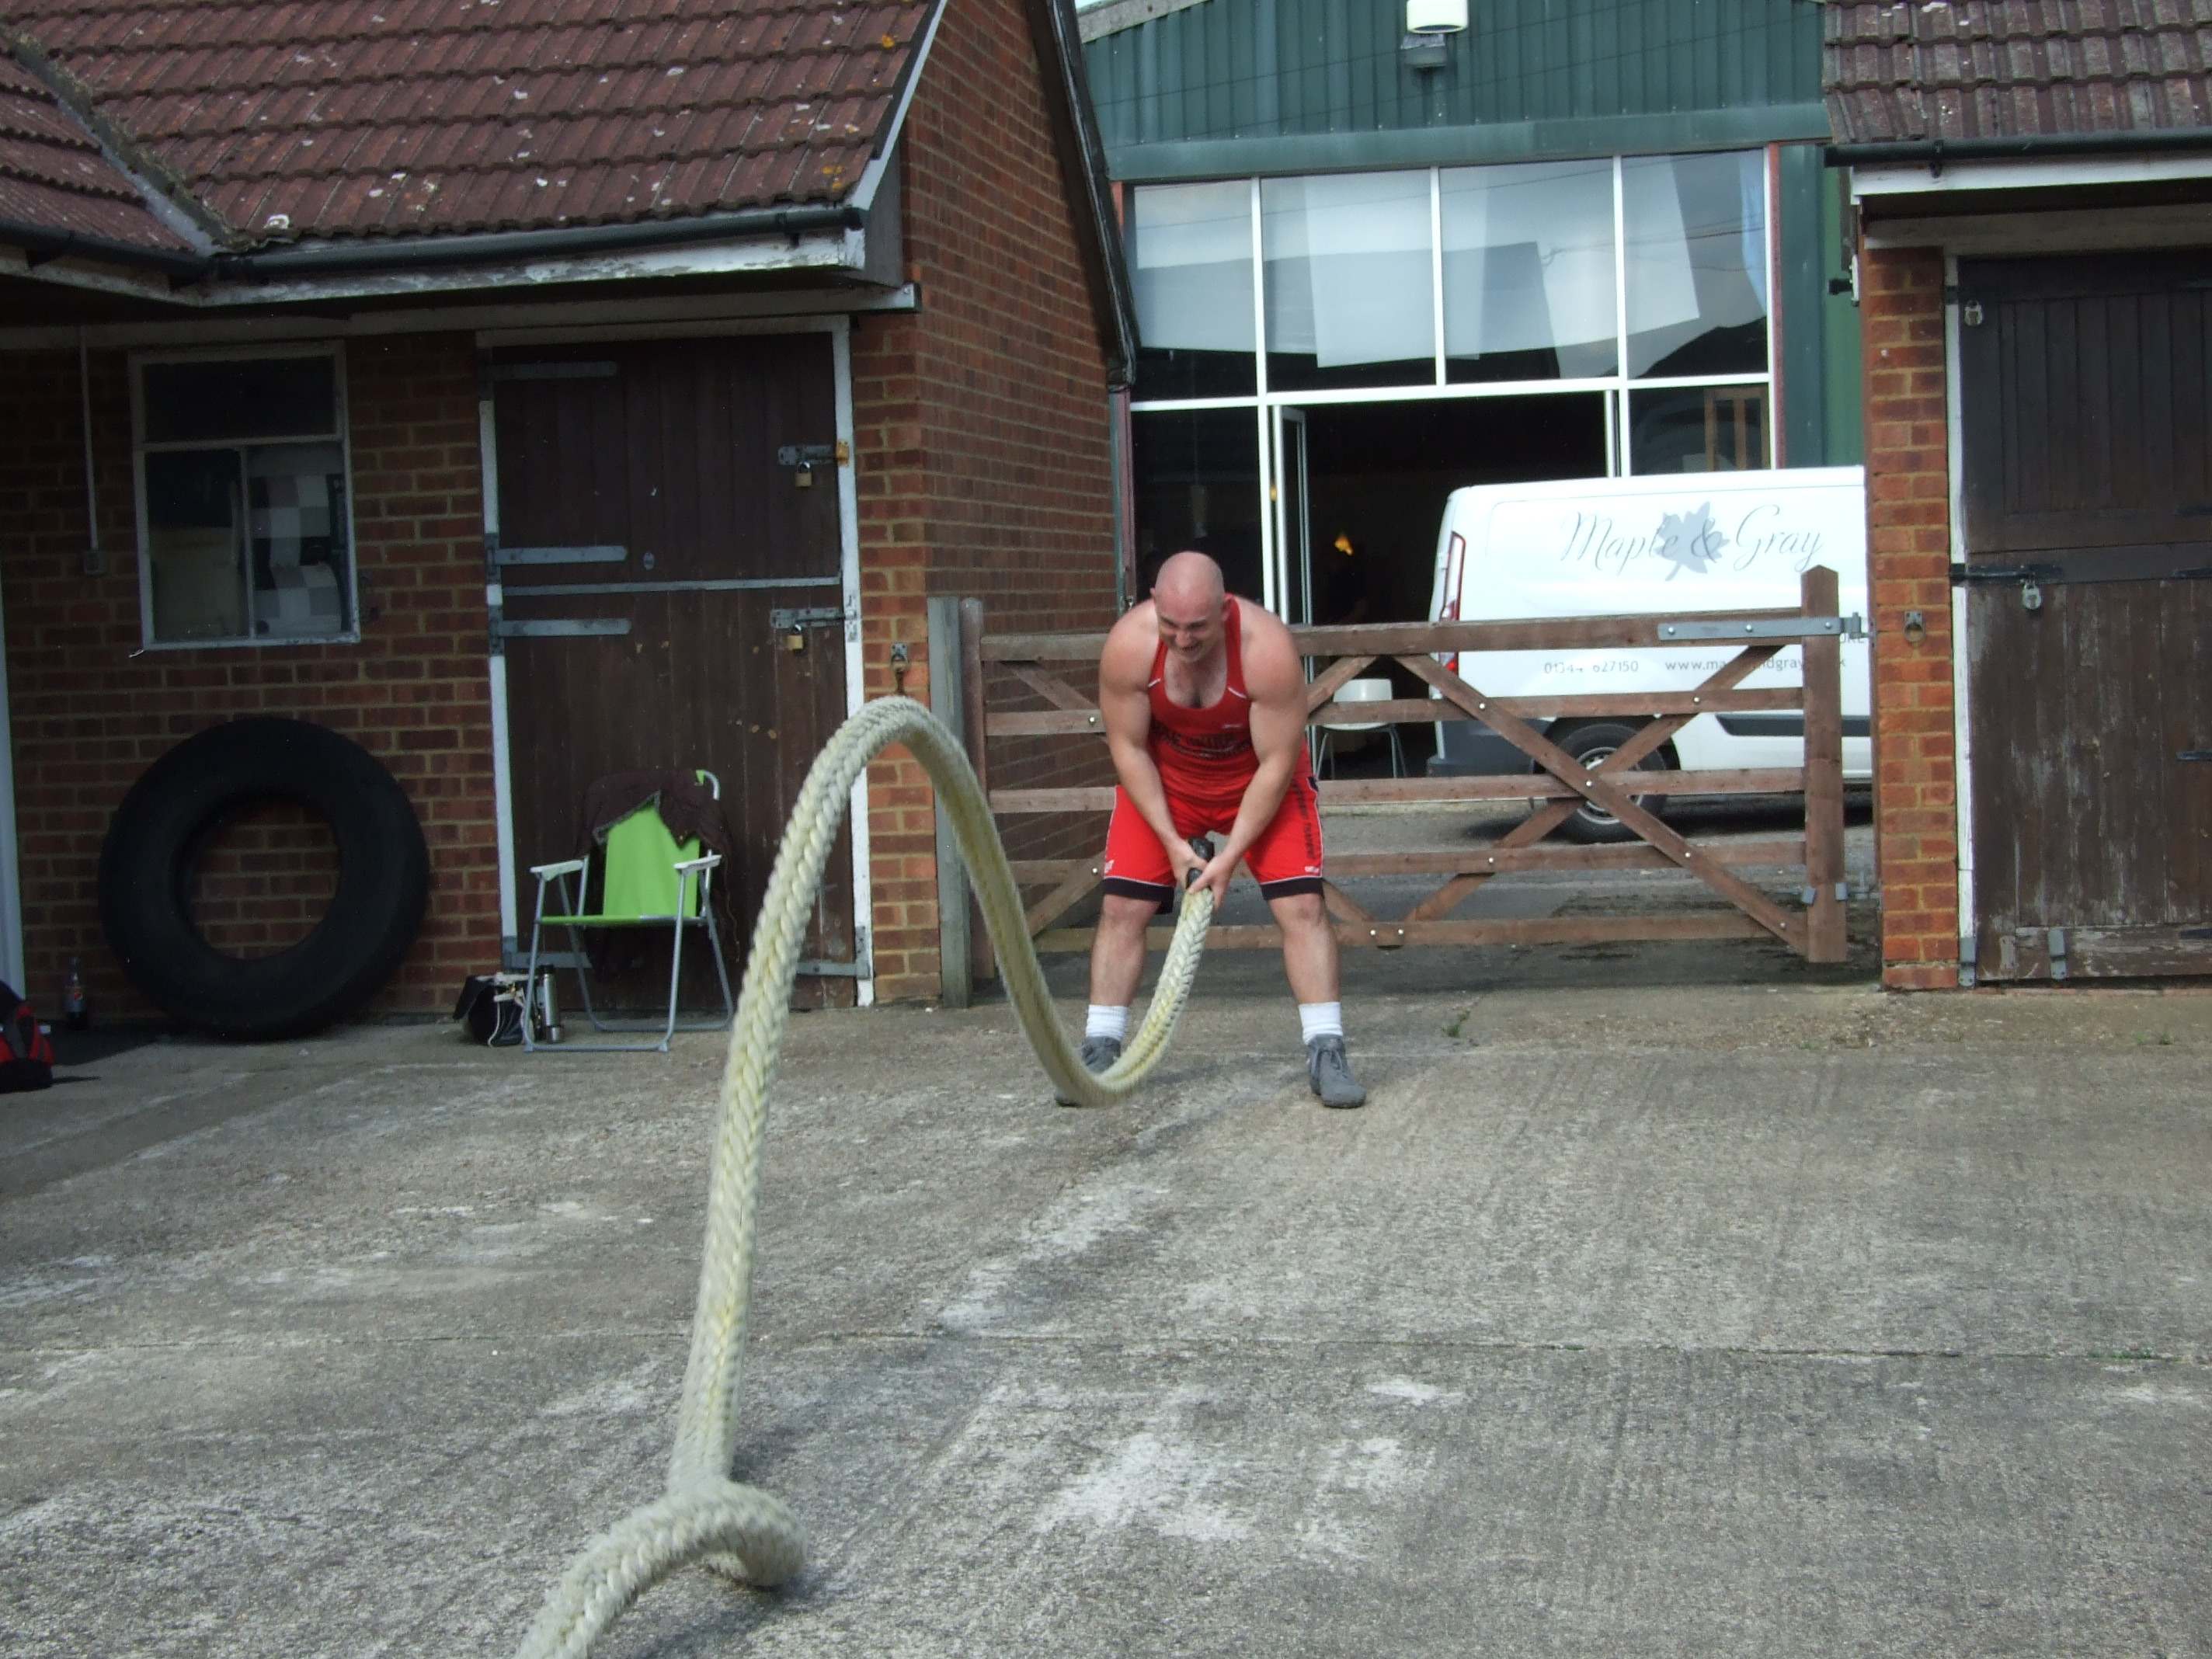 Strength and Conditioning Personal Trainer, Windsor, ascot   Dans